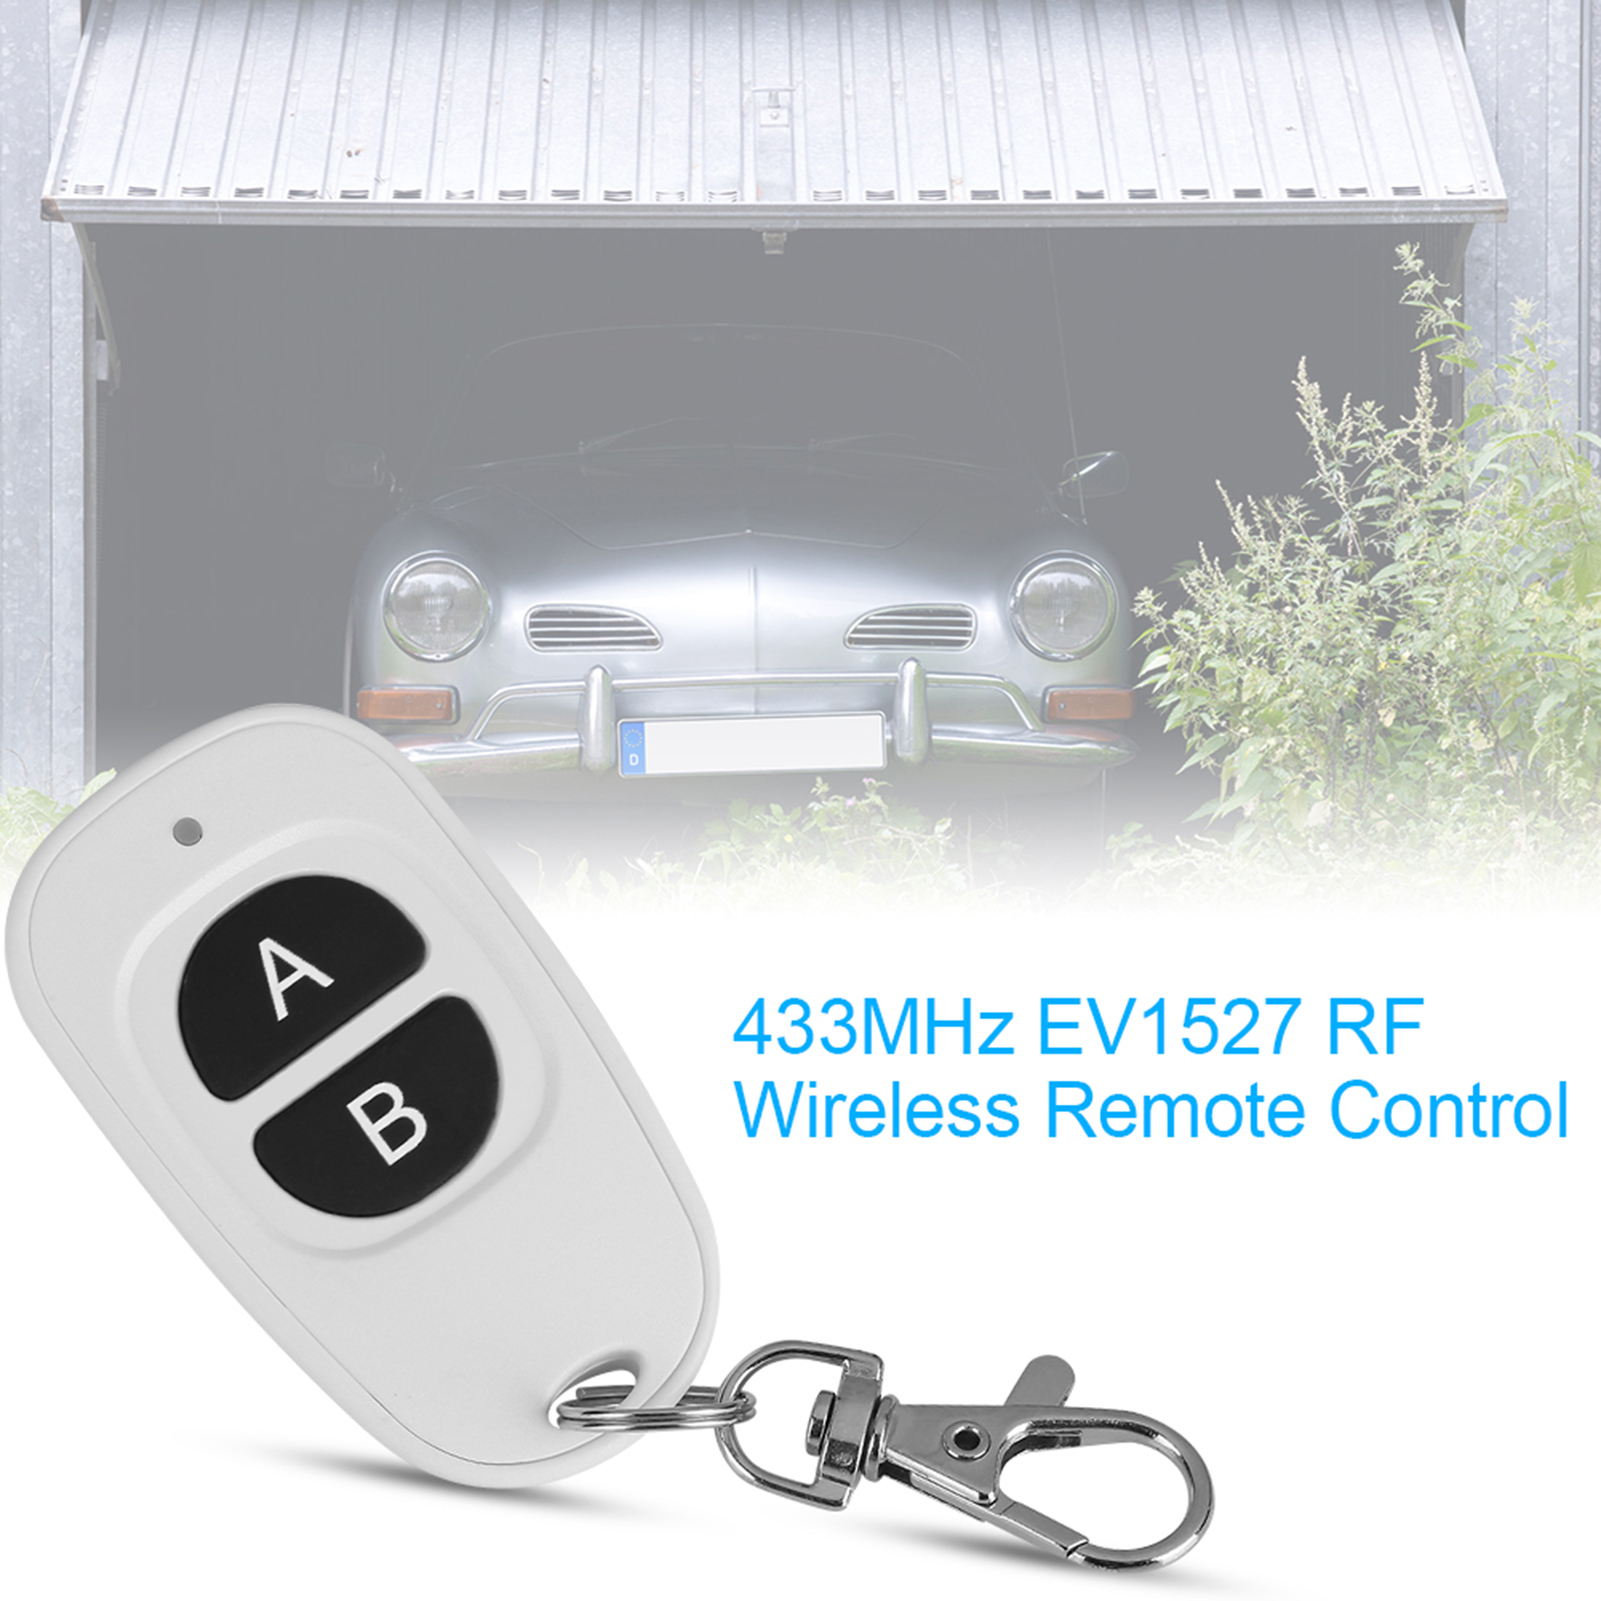 433MHz-EV1527-RF-Wireless-Transmitter-Garage-Door-1-4-Channel-Key-Remote-Control miniature 28